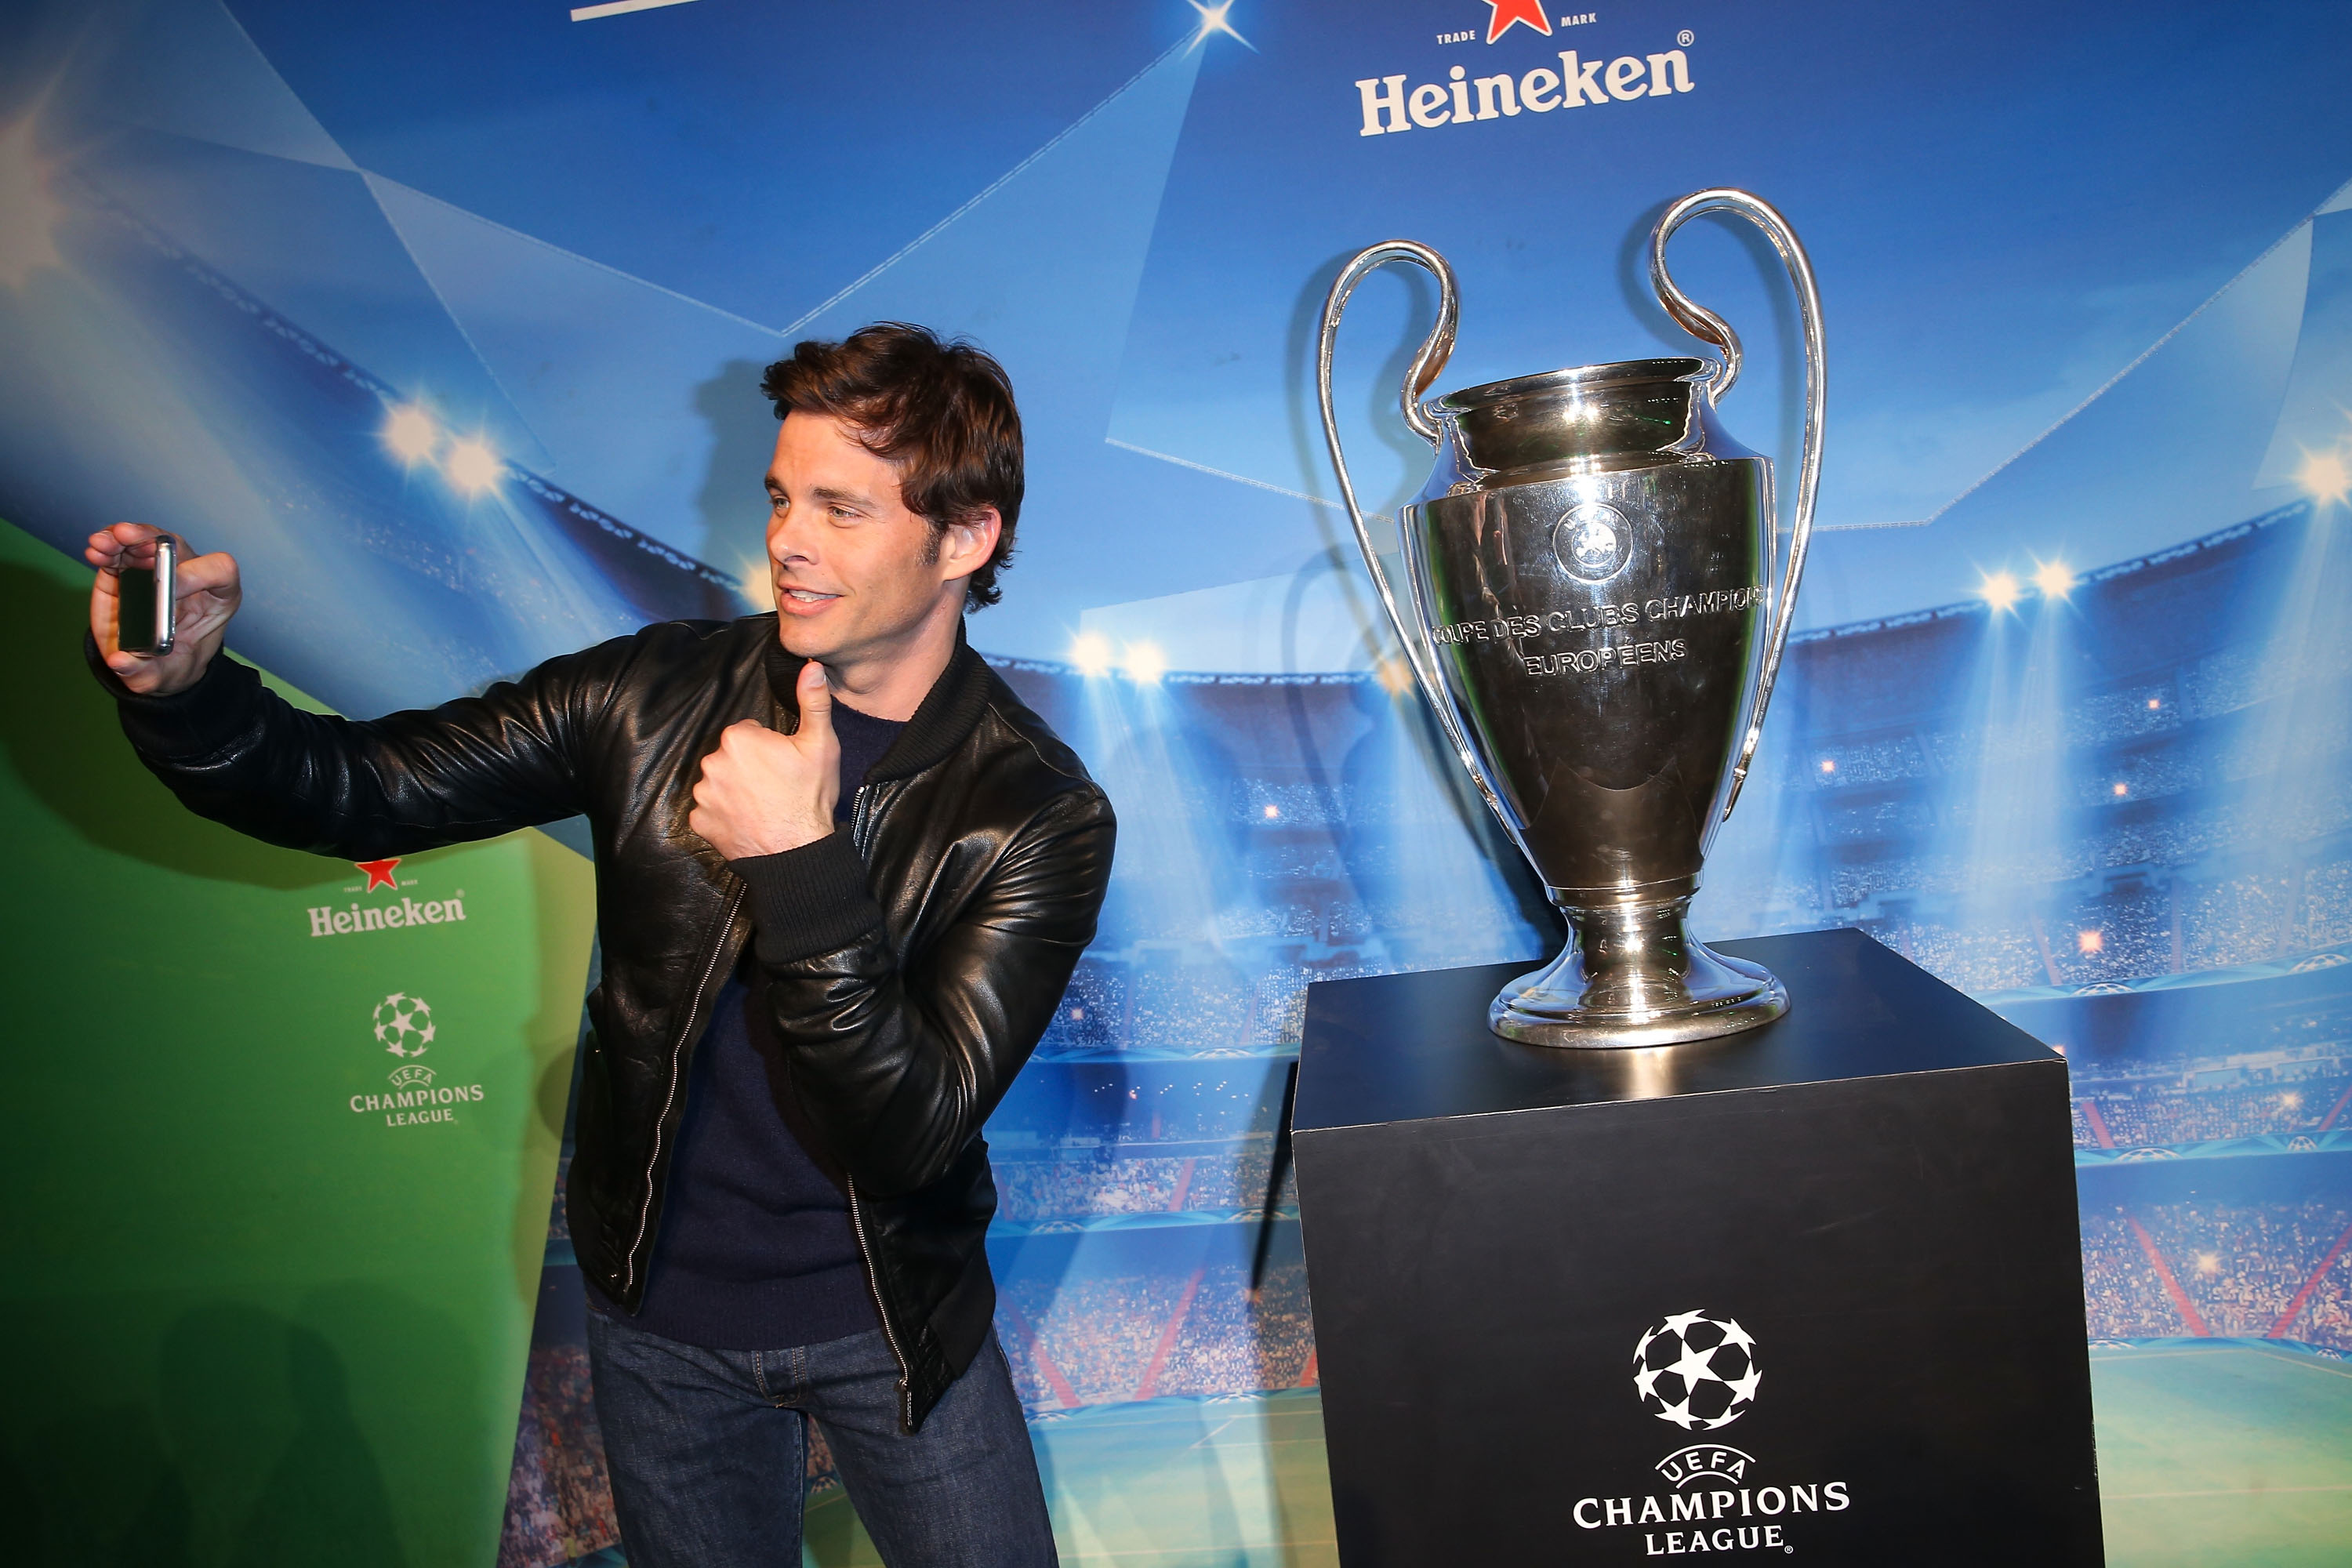 LOS ANGELES, CA - APRIL 20:  Actor James Marsden takes a selfie with the UEFA Championship trophy at The UEFA Champions League Trophy Tour presented by Heineken on April 20, 2015 in Los Angeles, California.  (Photo by Imeh Akpanudosen/Getty Images for Heineken)